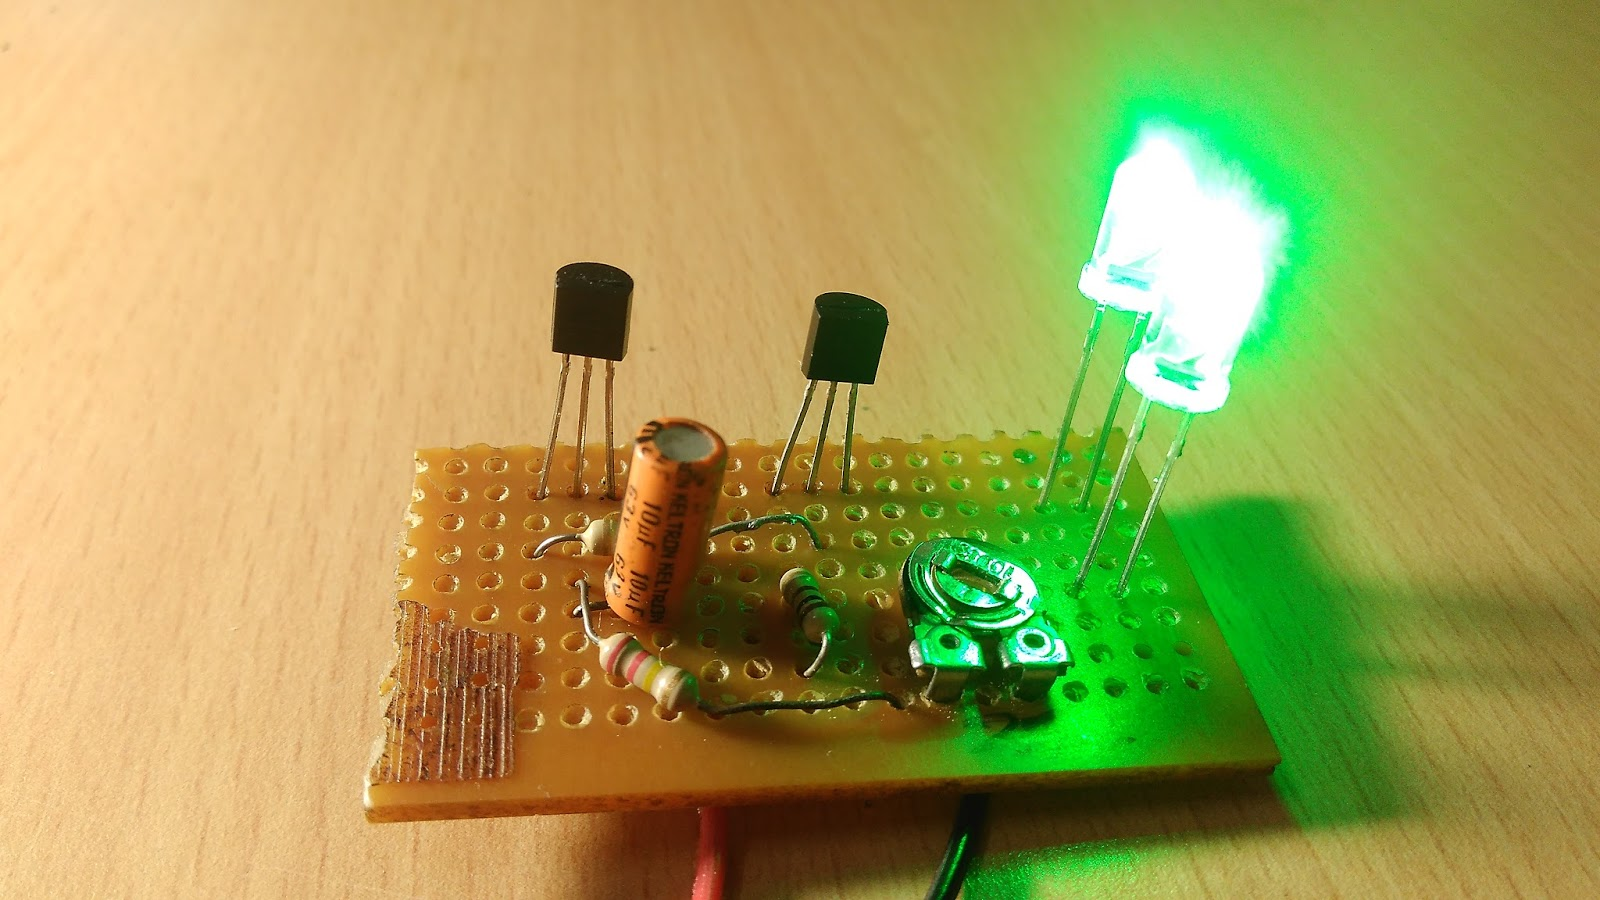 Blinking Led Lights Using Two Transistors One Capacitor Simple Circuit This Project Is On How To Make A Flashing Pcb Board Watch The Video For Detailed Build